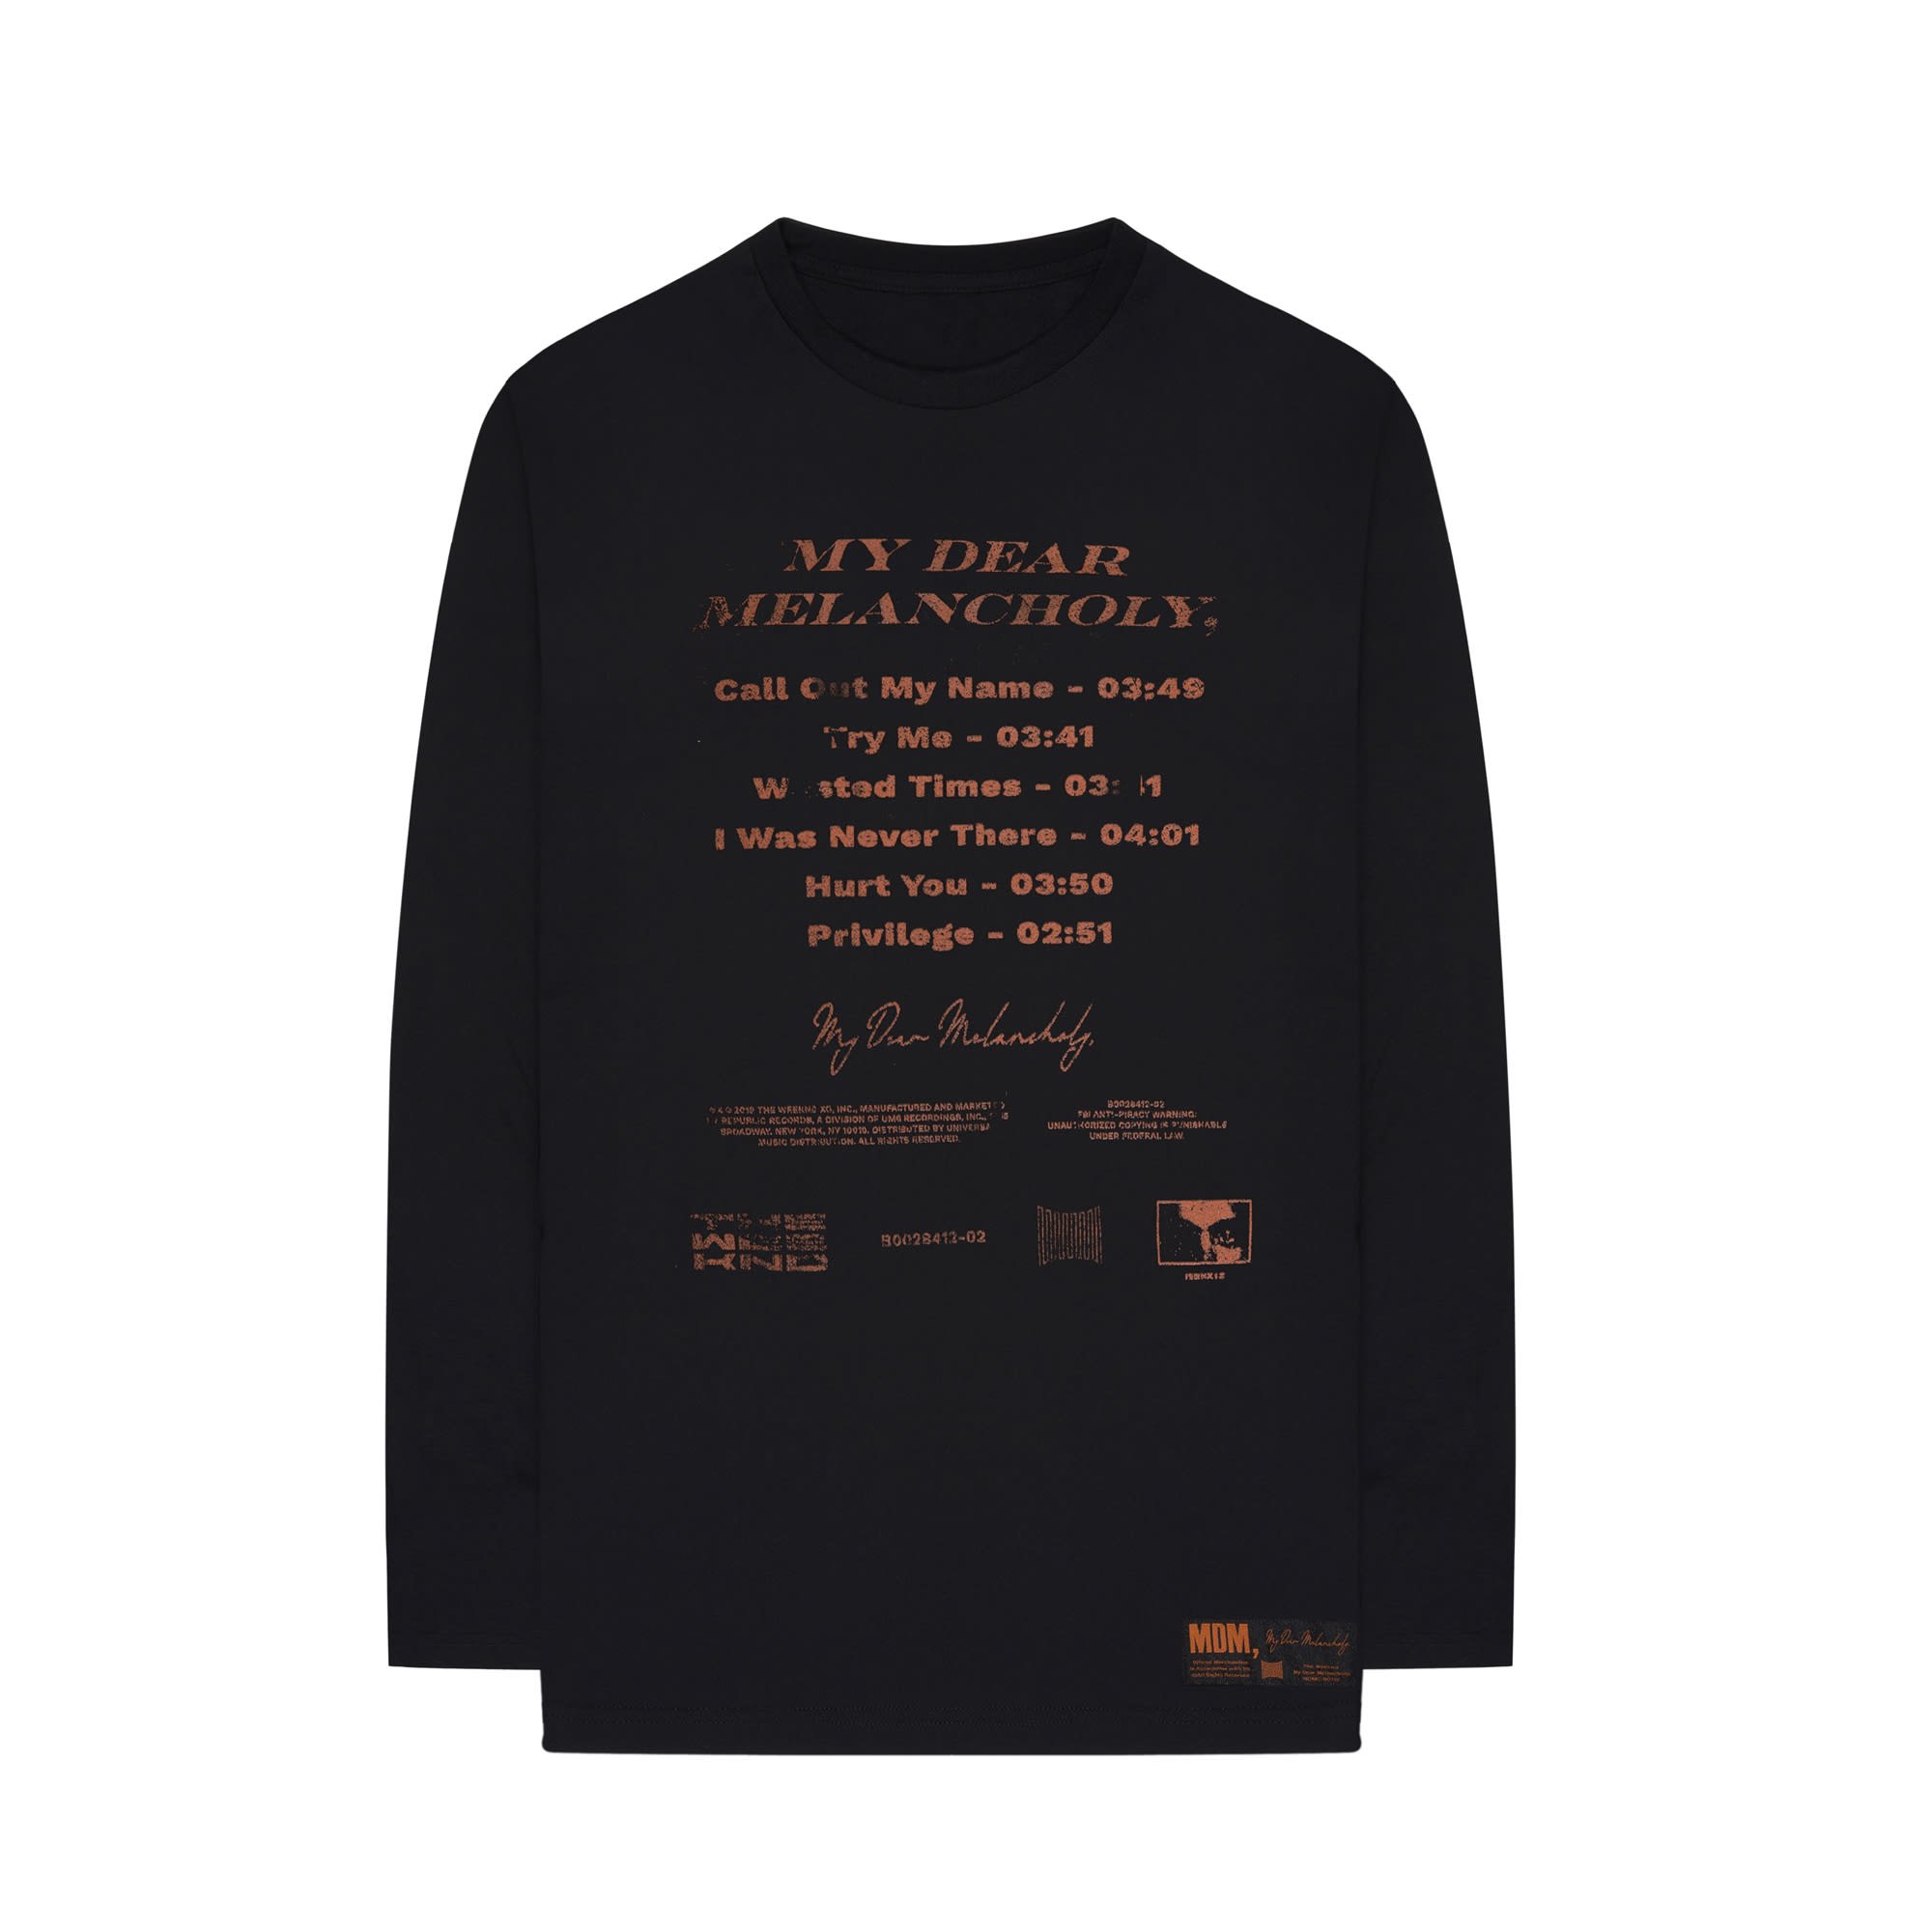 The Weeknd's 'My Dear Melancholy' tracklist long sleeve t-shirt front.